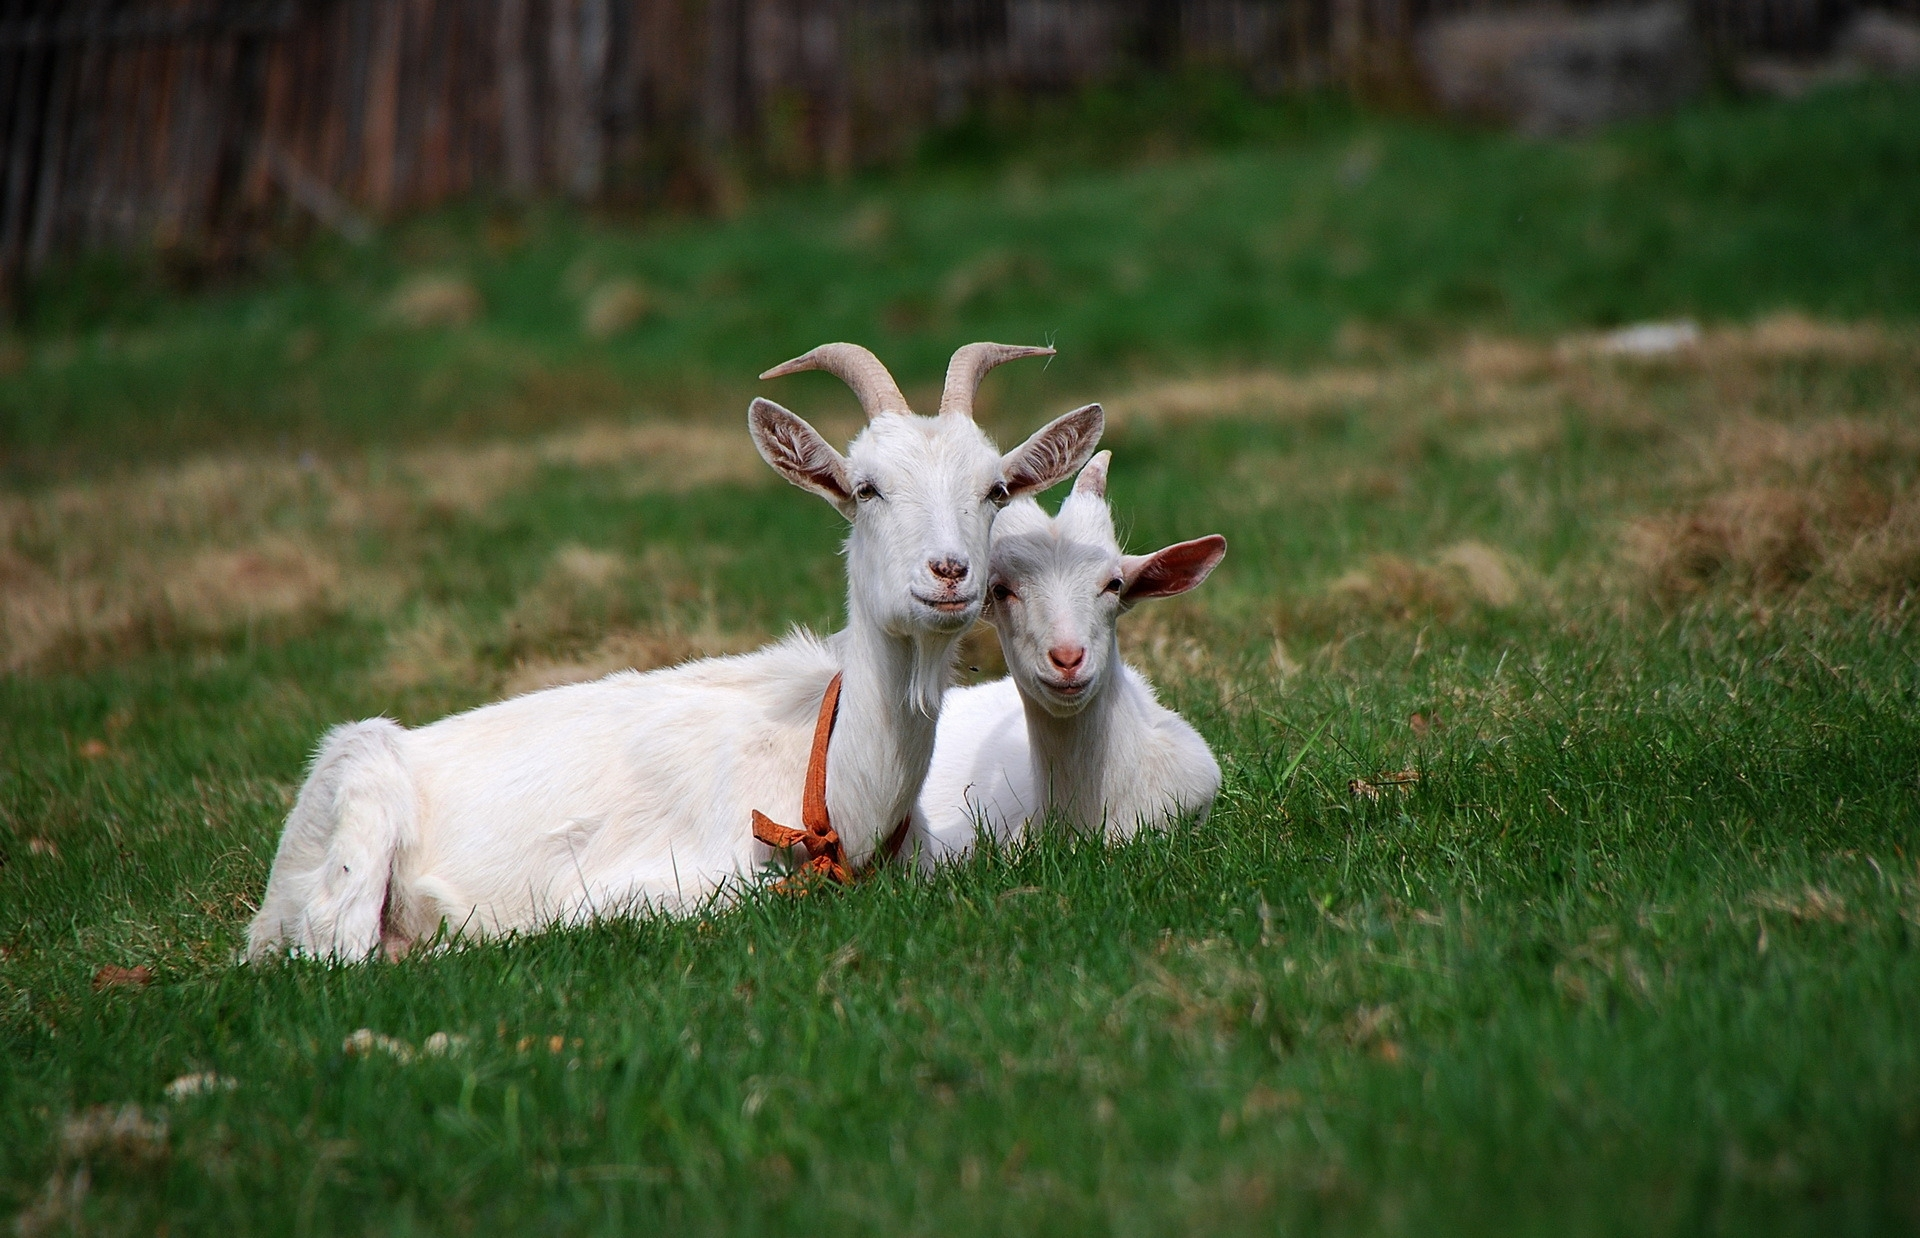 68313 download wallpaper Animals, Goats, Grass, Horns, Sit, Friends, Grazing, Pasture screensavers and pictures for free